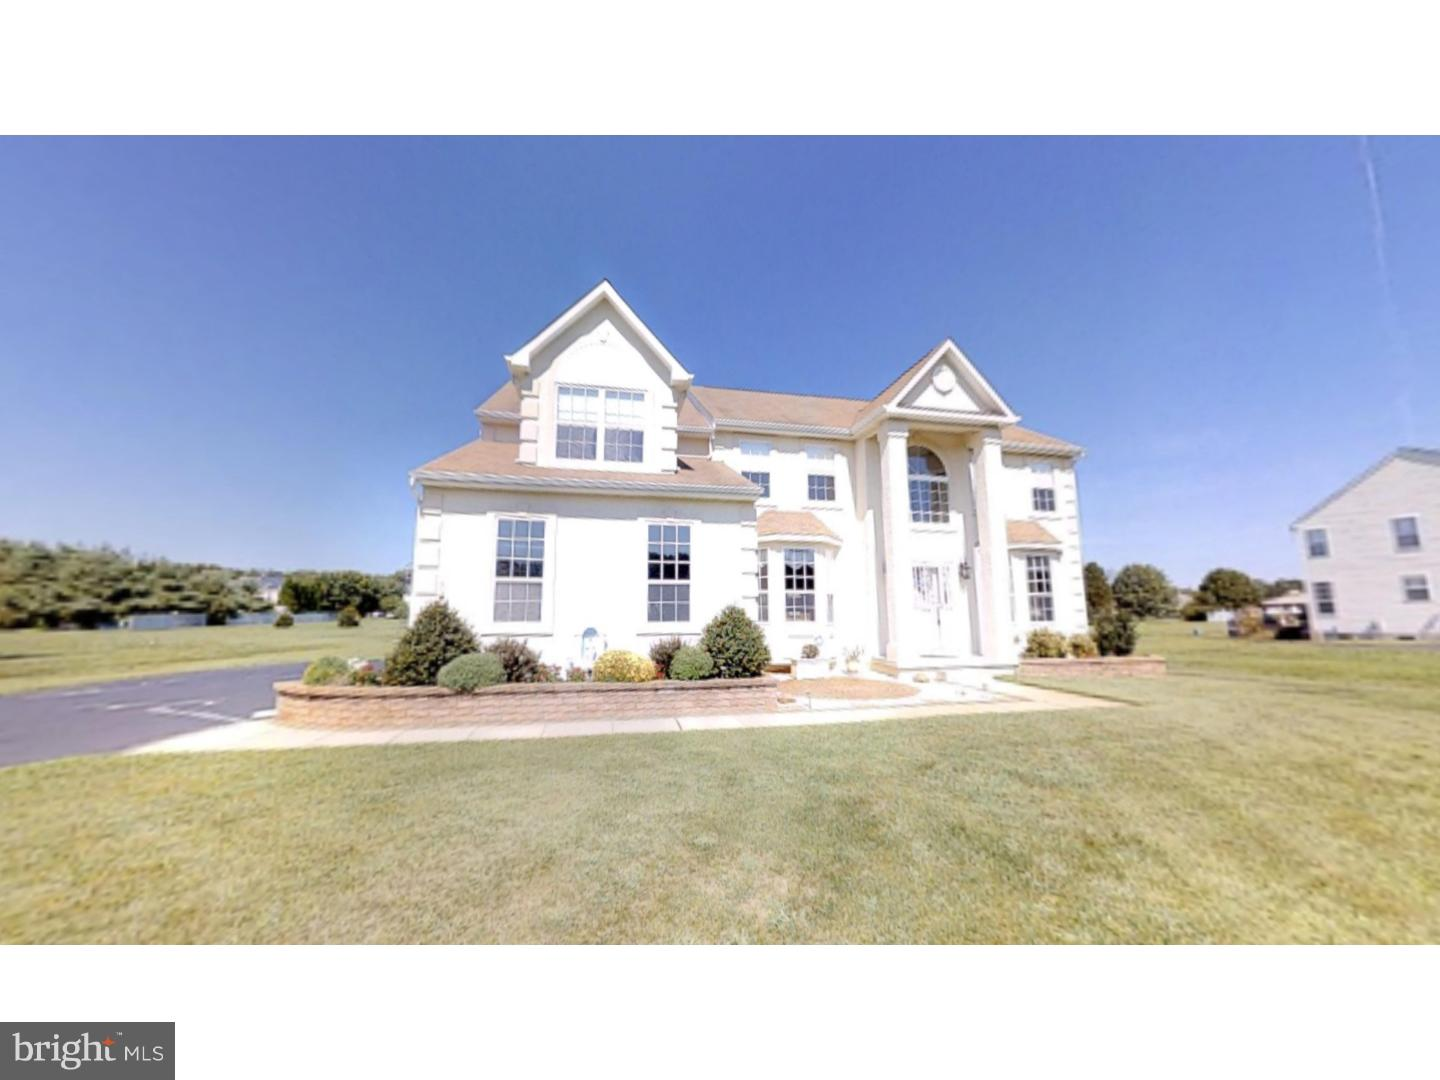 Single Family Home for Sale at 115 ASHLEY Drive Franklinville, New Jersey 08322 United StatesMunicipality: Franklin Township